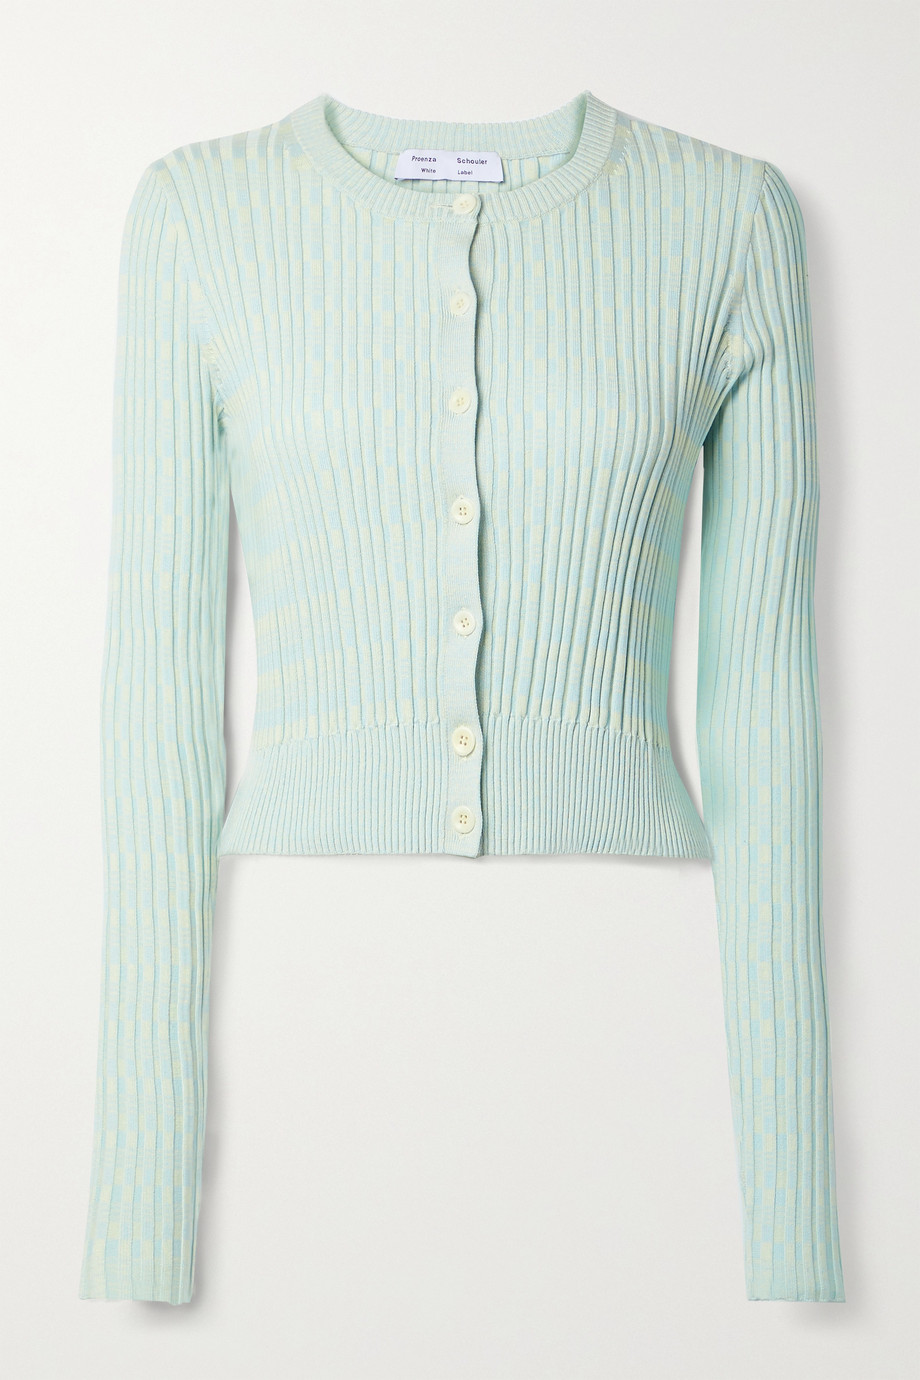 PROENZA SCHOULER WHITE LABEL Cropped ribbed mélange silk and cotton-blend cardigan